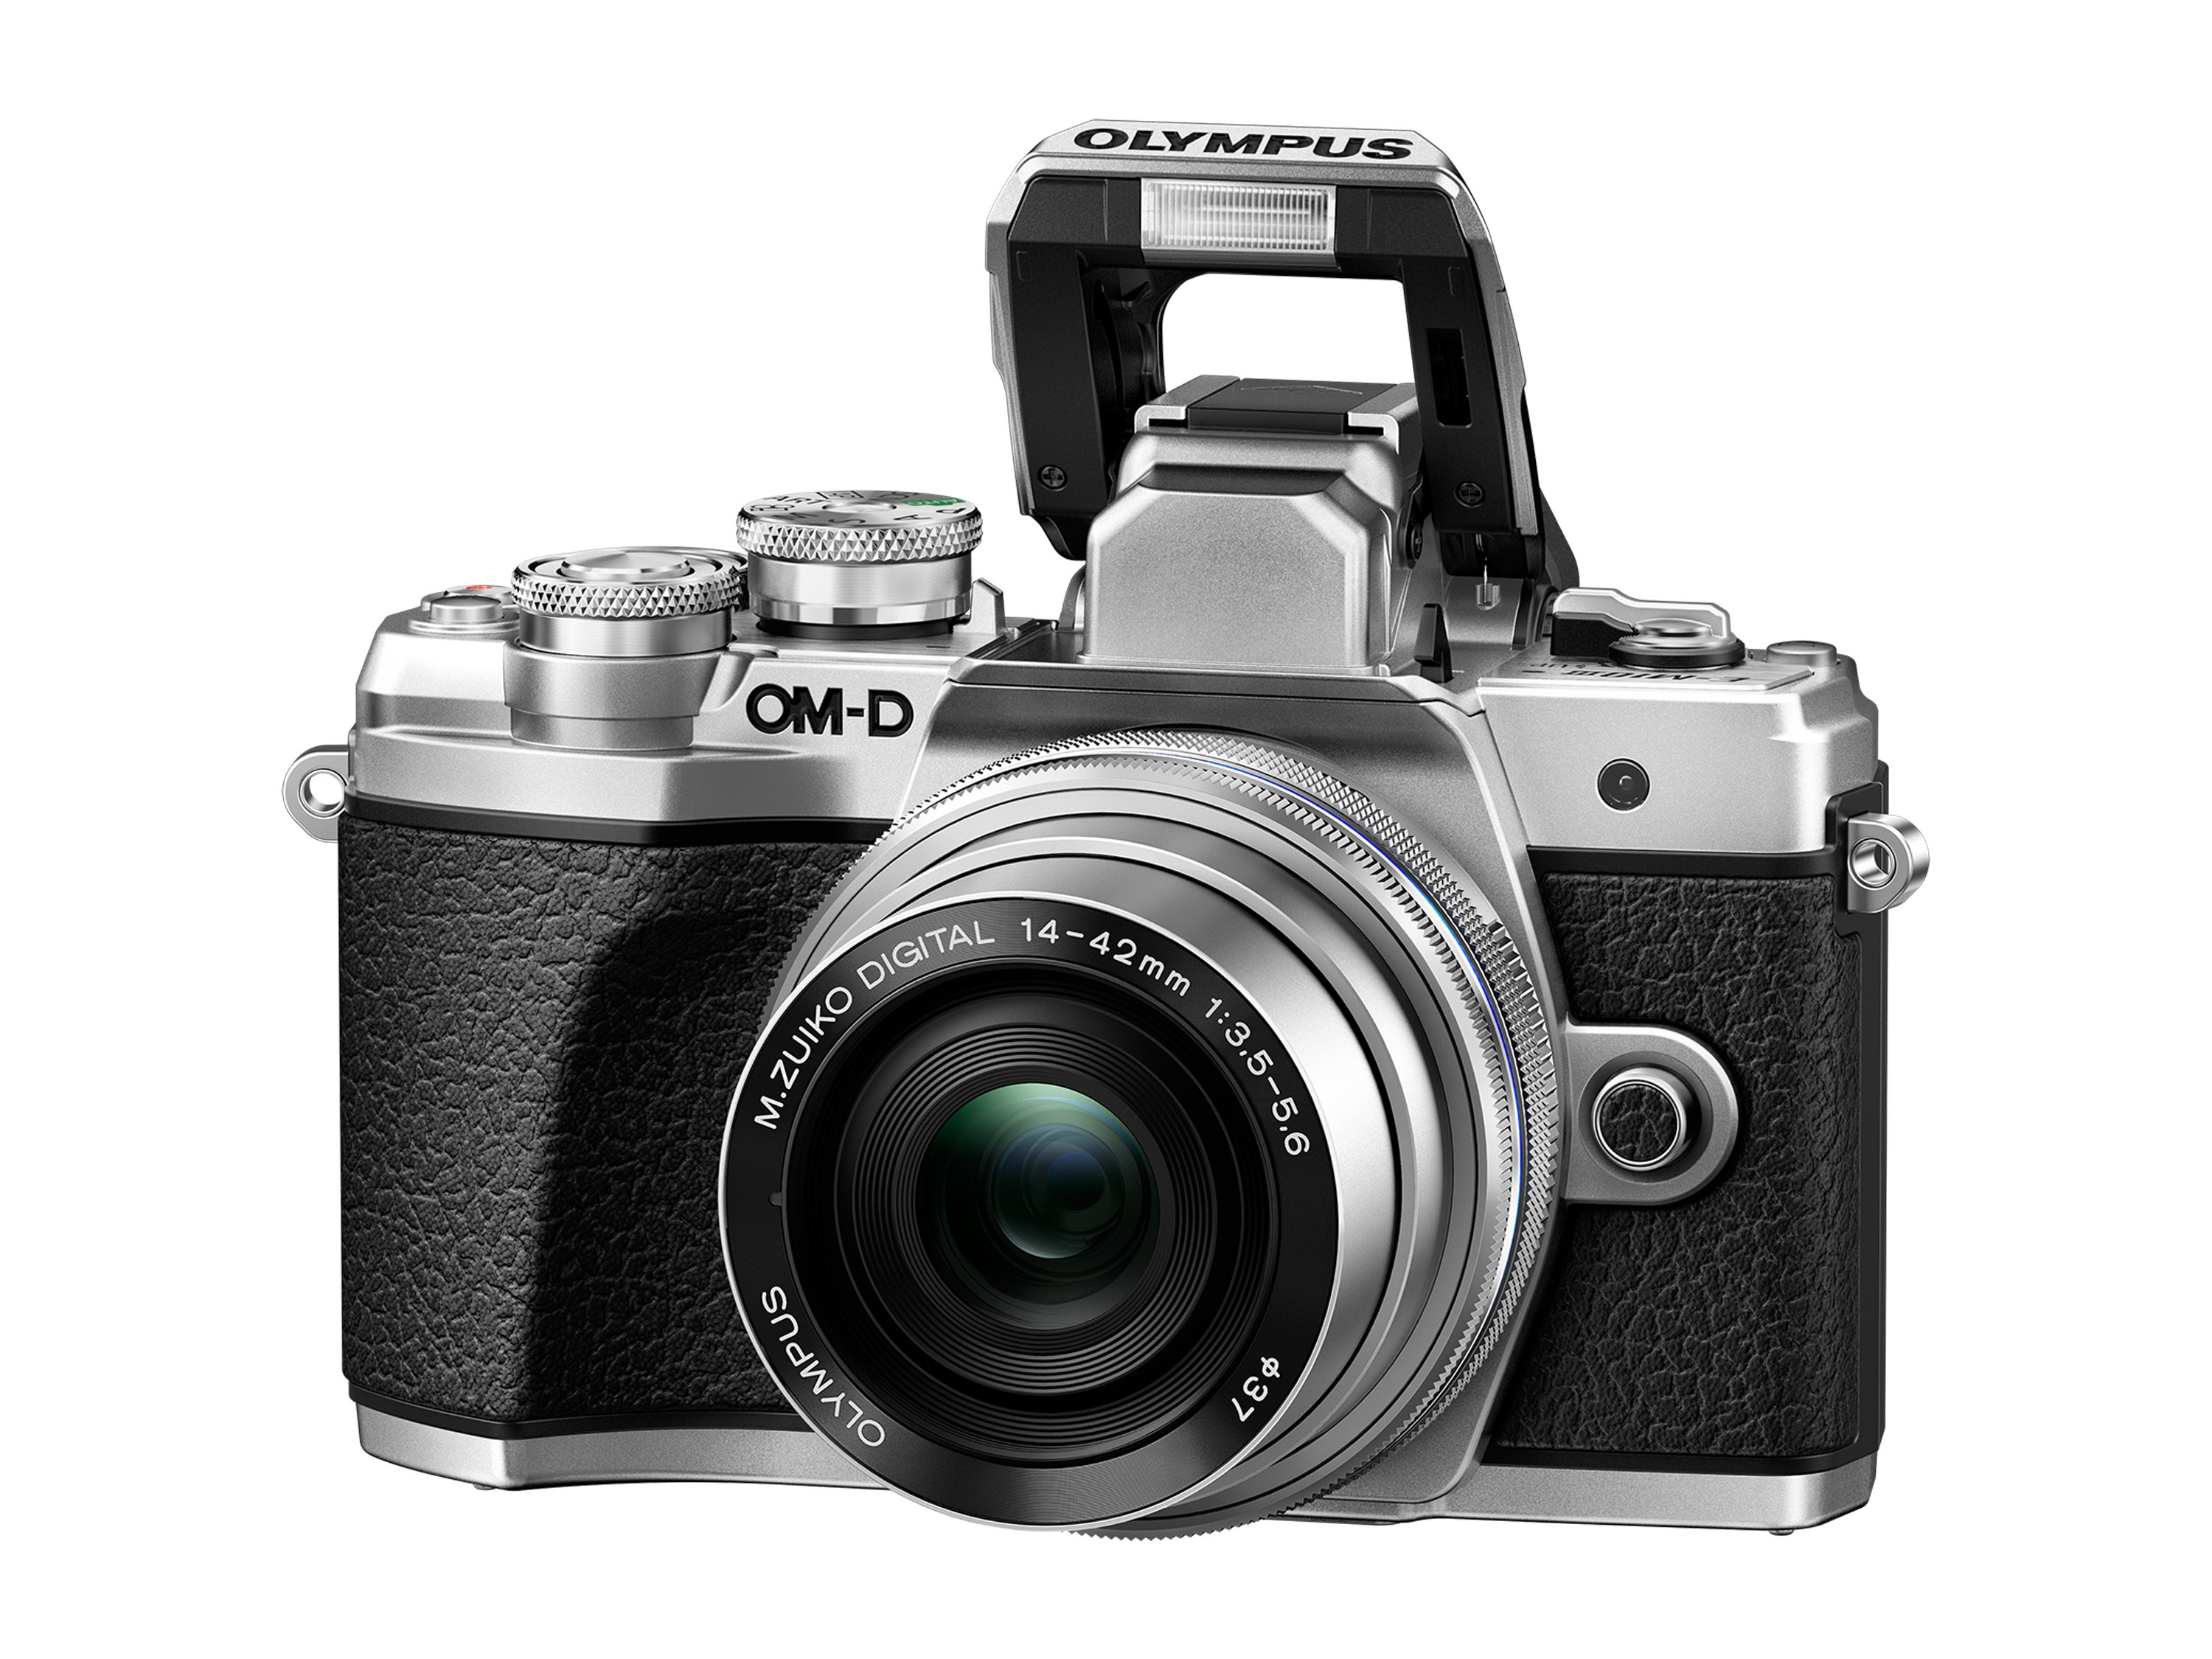 Olympus OM-D E-M10 Mark III 16.1Megapixel Mirrorless Camera with Lens 14mm 42mm Silver by Olympus